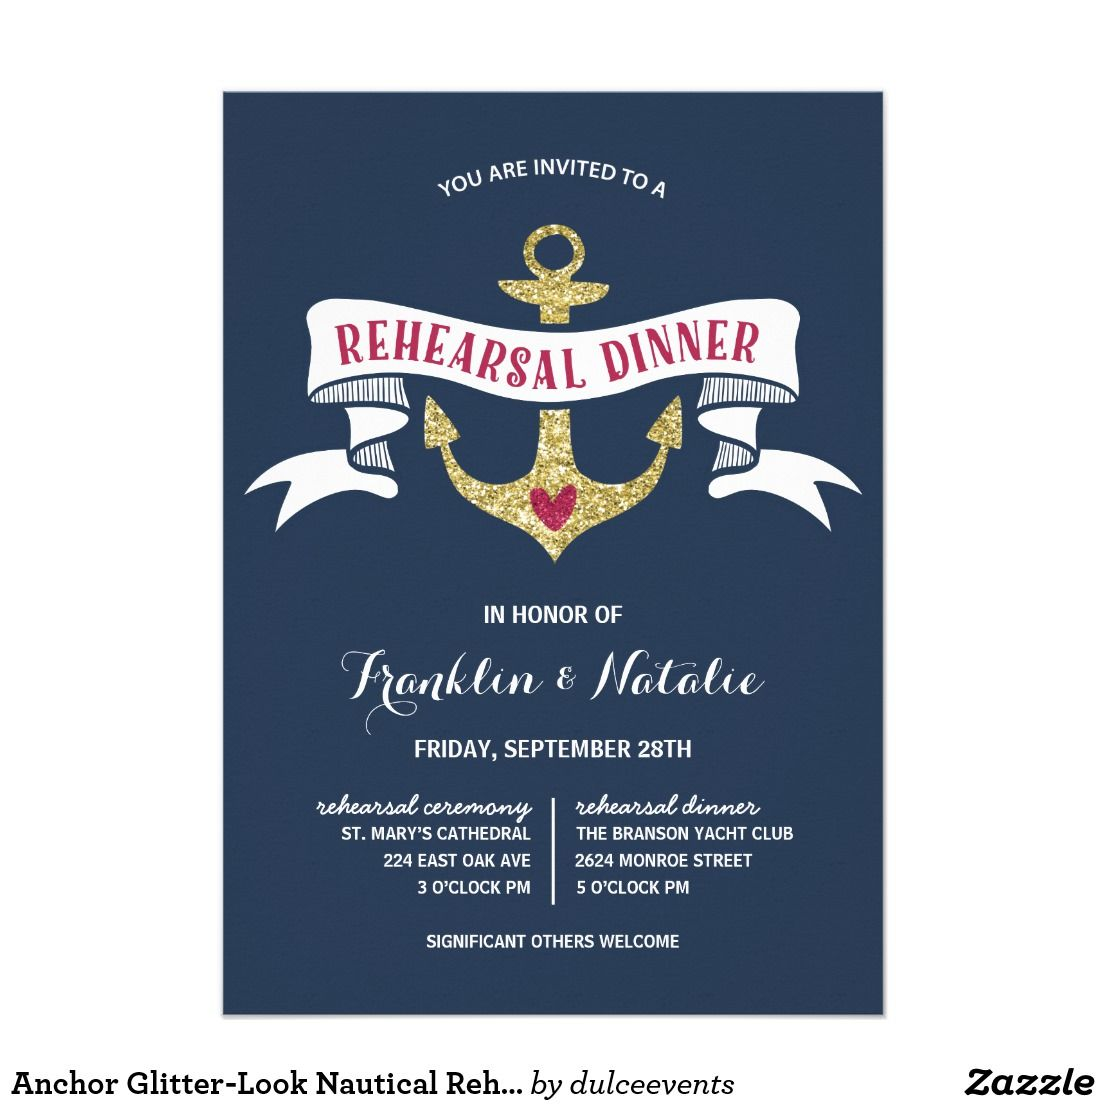 Nautical Theme Rehearsal Dinner Card Featuring Glitter Look Anchor